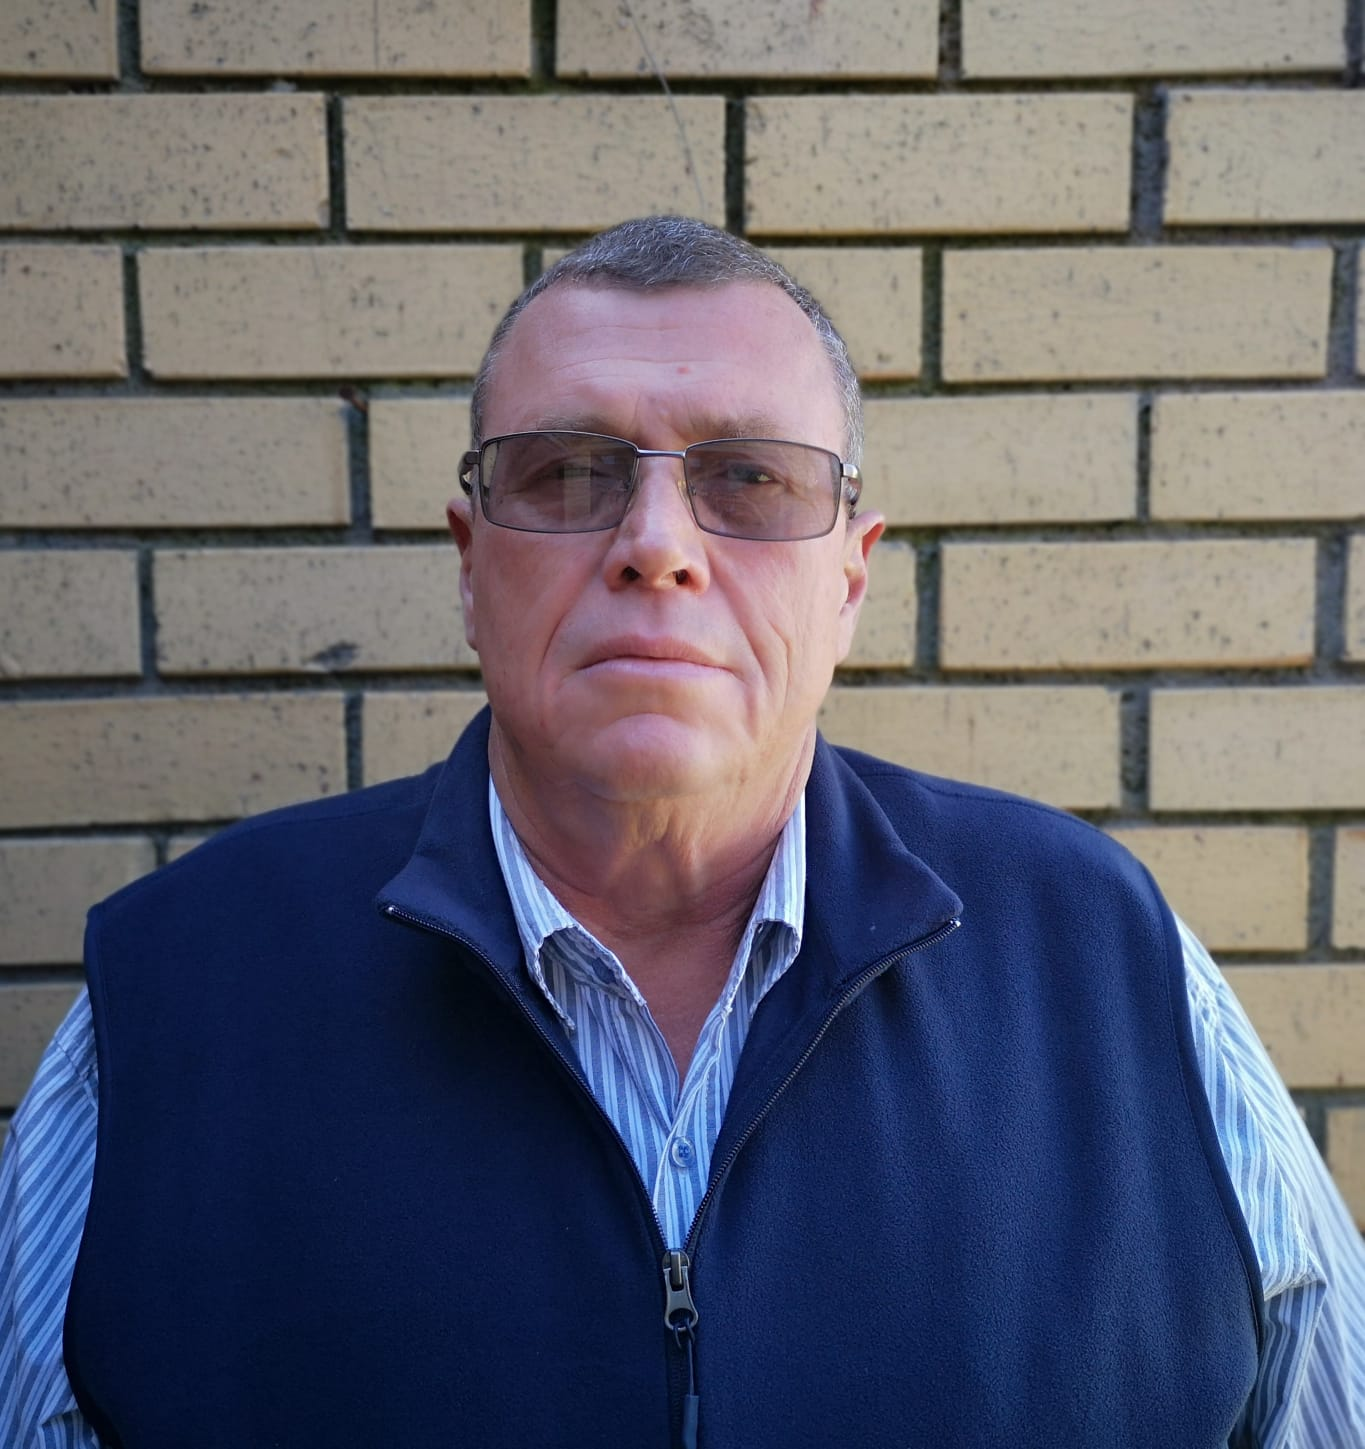 Jeff van Zyl general manager new large projects